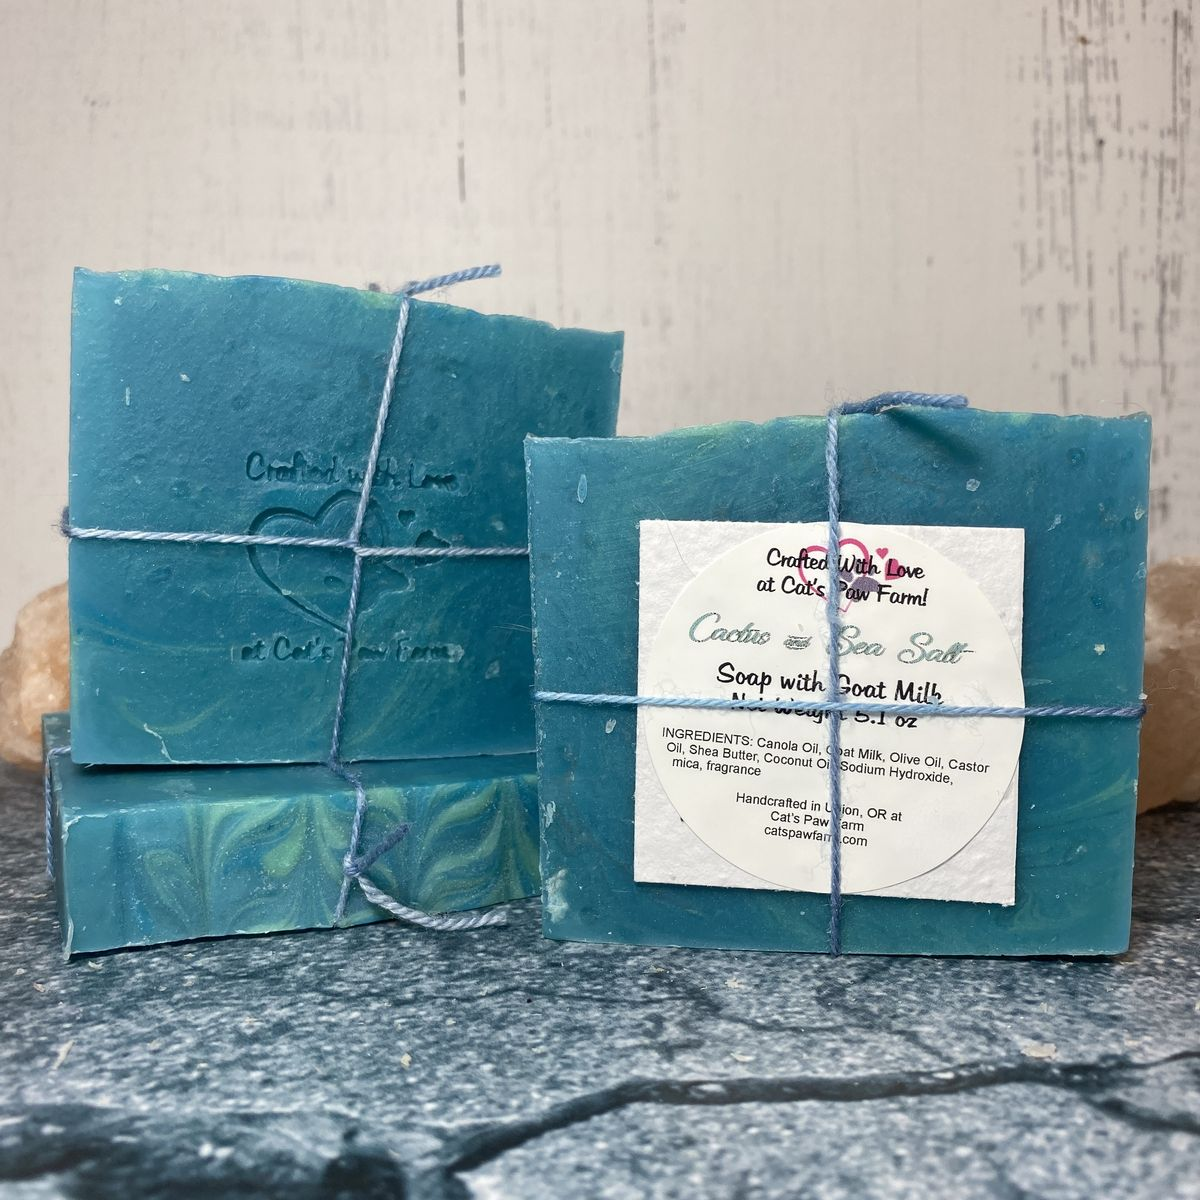 Cactus and Sea Salt Scented Soap with Goat Milk